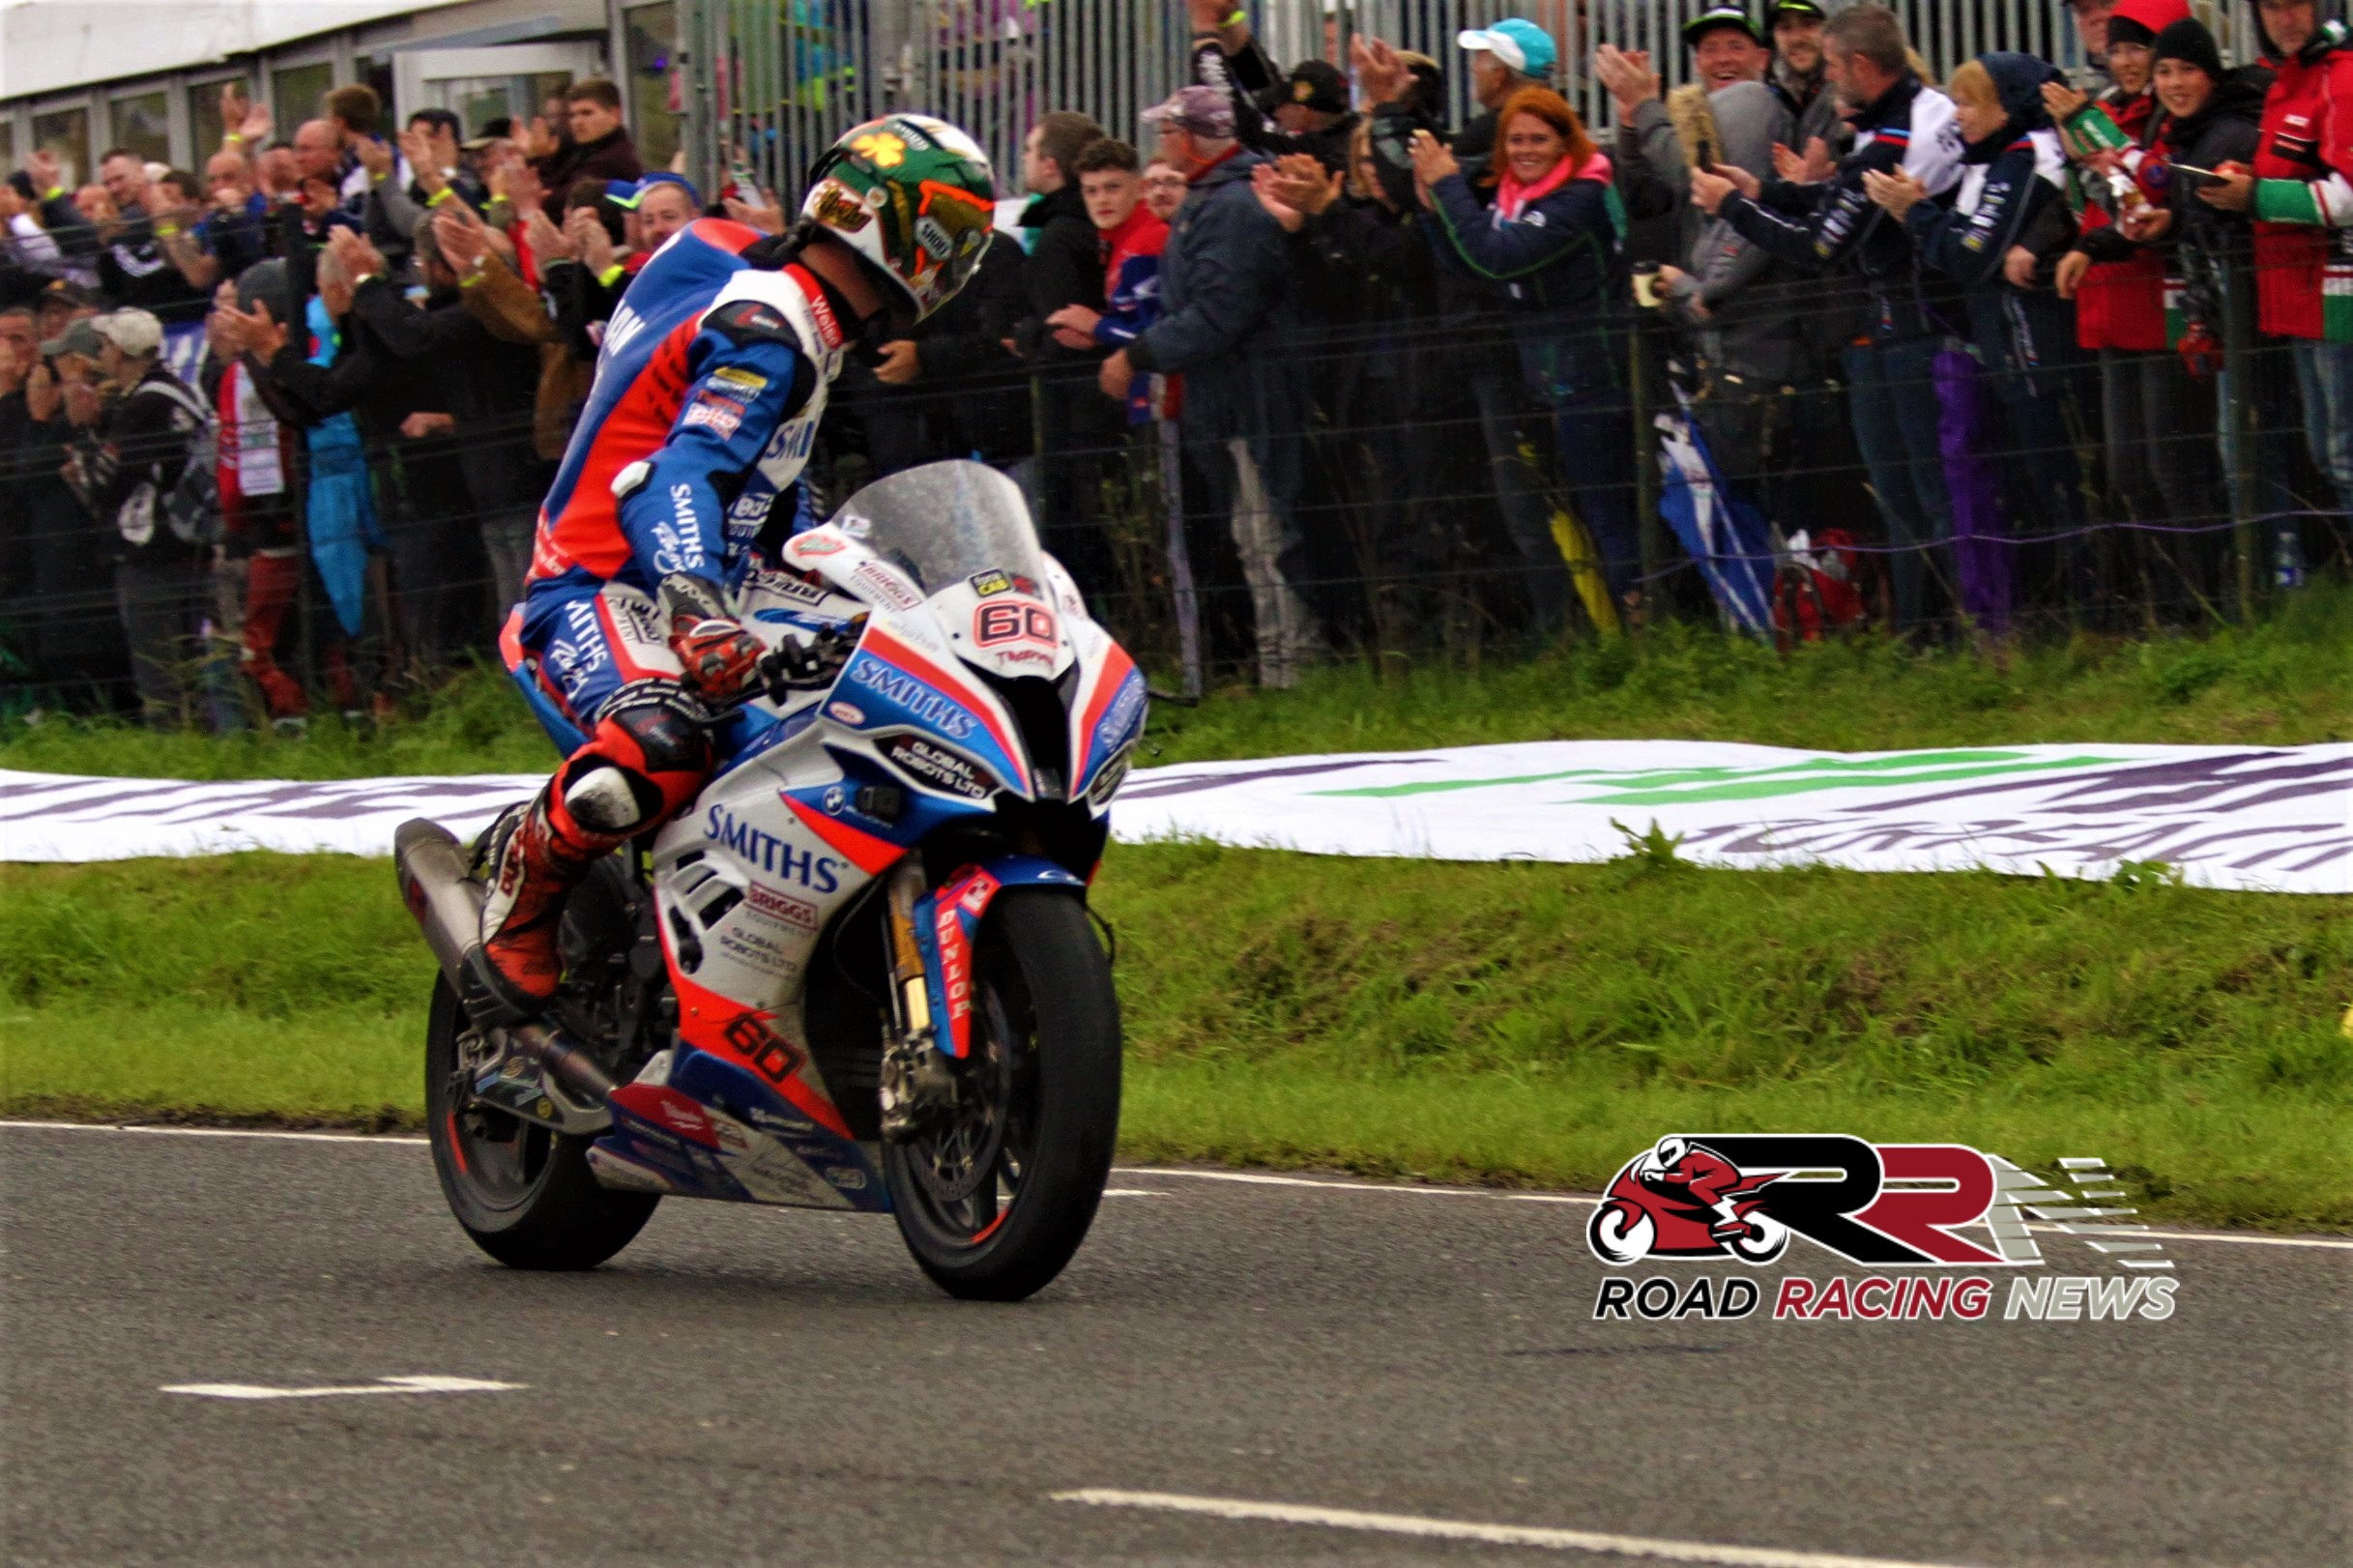 FonaCAB Ulster Grand Prix: World's Fastest Road Racer Hickman Retains MMB Surfacing Superbike Title